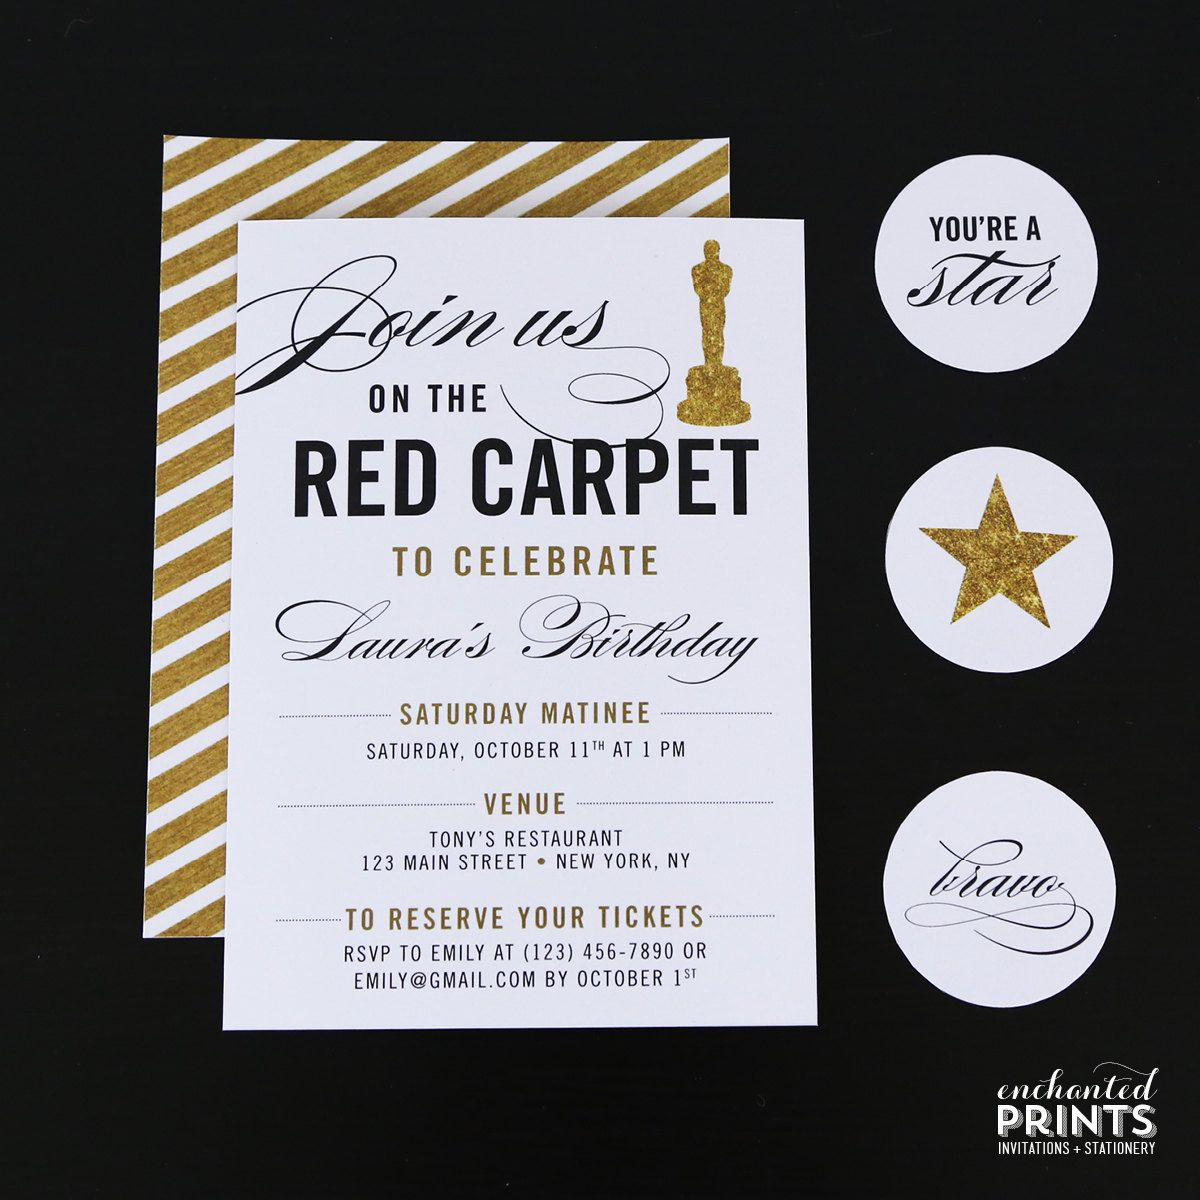 Old Hollywood Party Invitations as well Red Carpet Wallpaper Backdrops further 060612 Courtney Stodden Doug Hutchison 1351724422 besides Invitation Templates Dinner Party Free also Fiesta De Cine Invitaciones Y. on oscar party invitation 2017